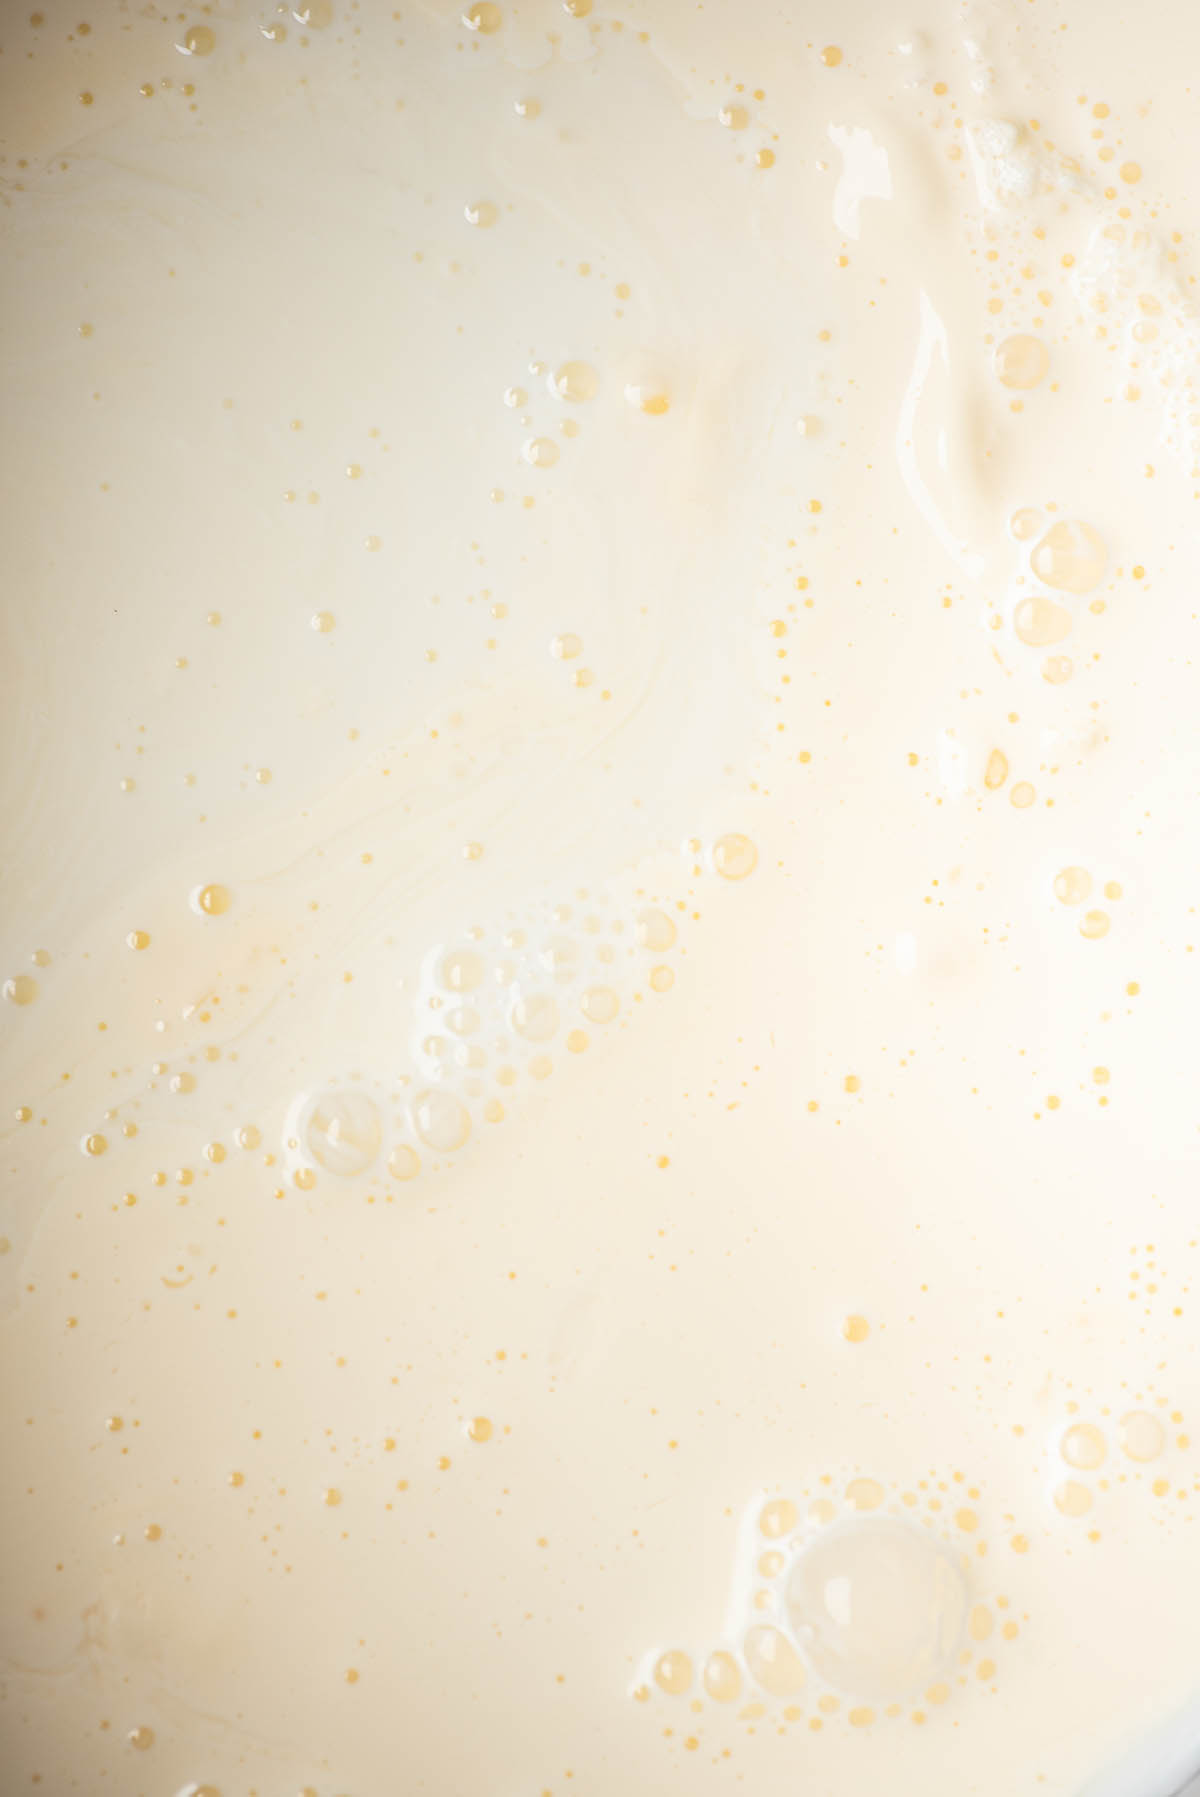 Close up of milk and cream mixing together.